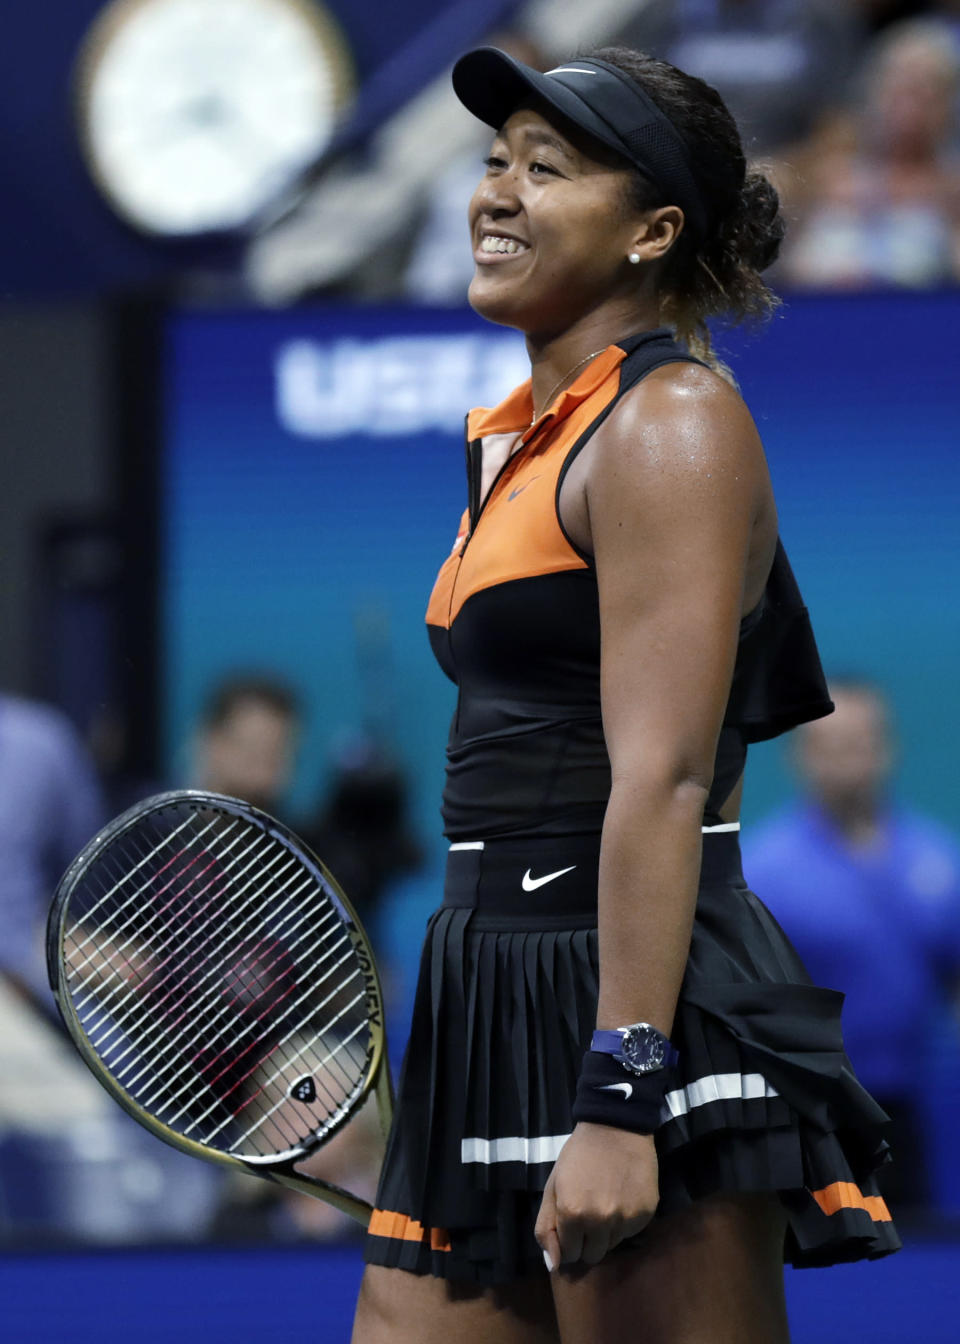 Naomi Osaka, of Japan, smiles after defeating Coco Gauff, of the United States, during the third round of the U.S. Open tennis tournament Saturday, Aug. 31, 2019, in New York. (AP Photo/Adam Hunger)